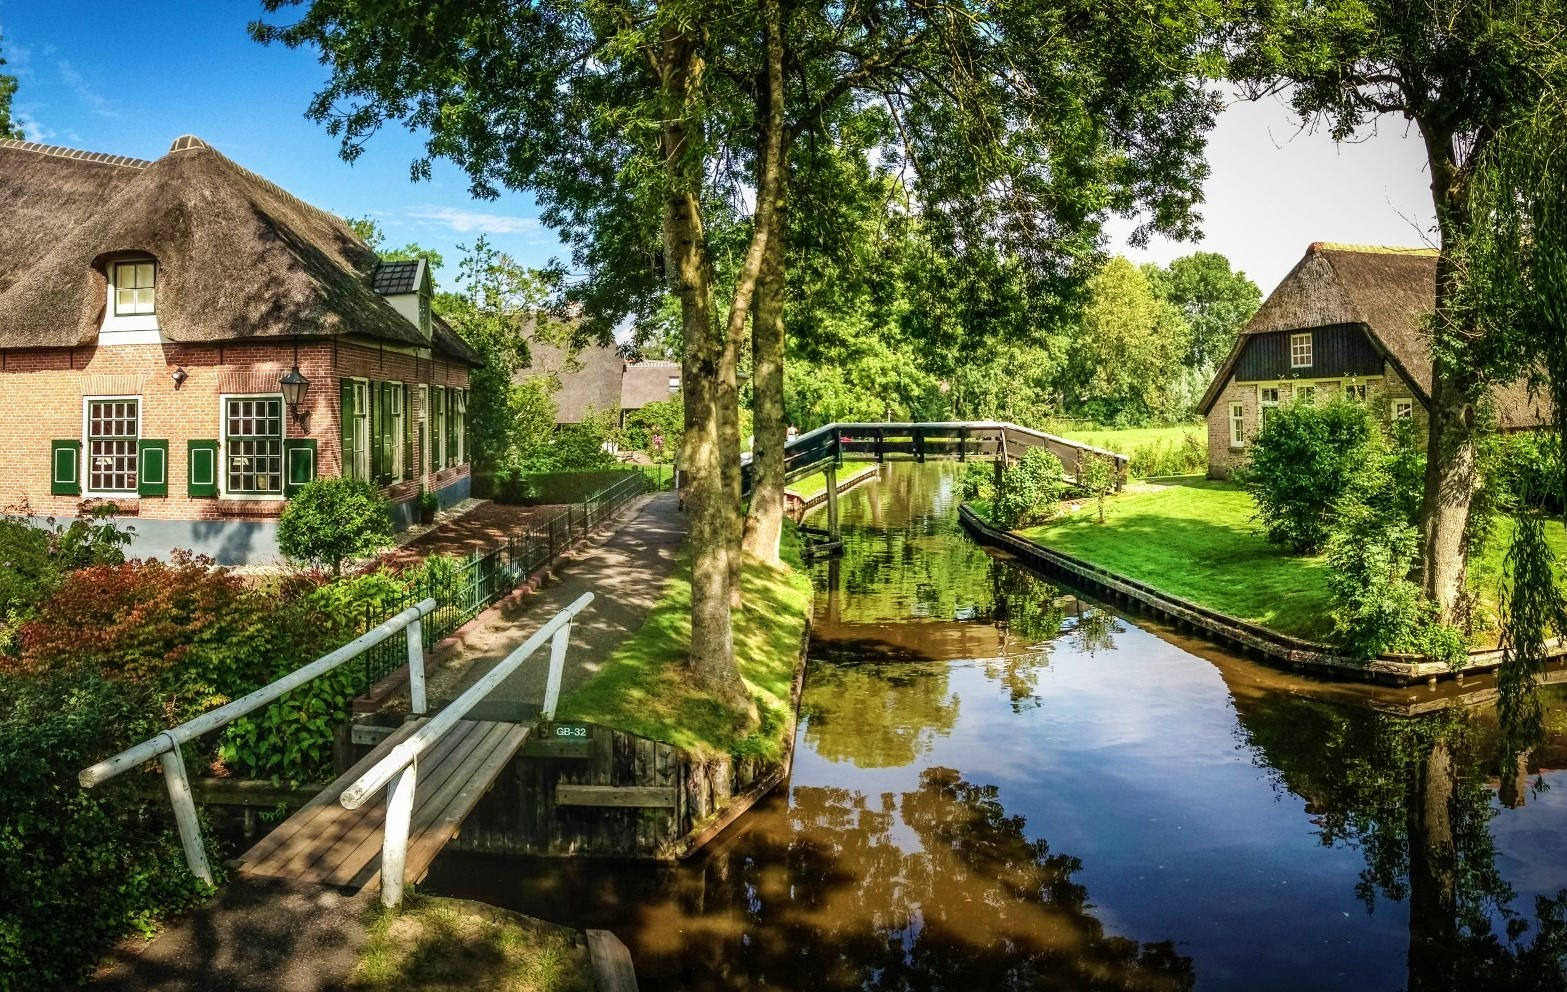 Giethoorn with canals instead of streets